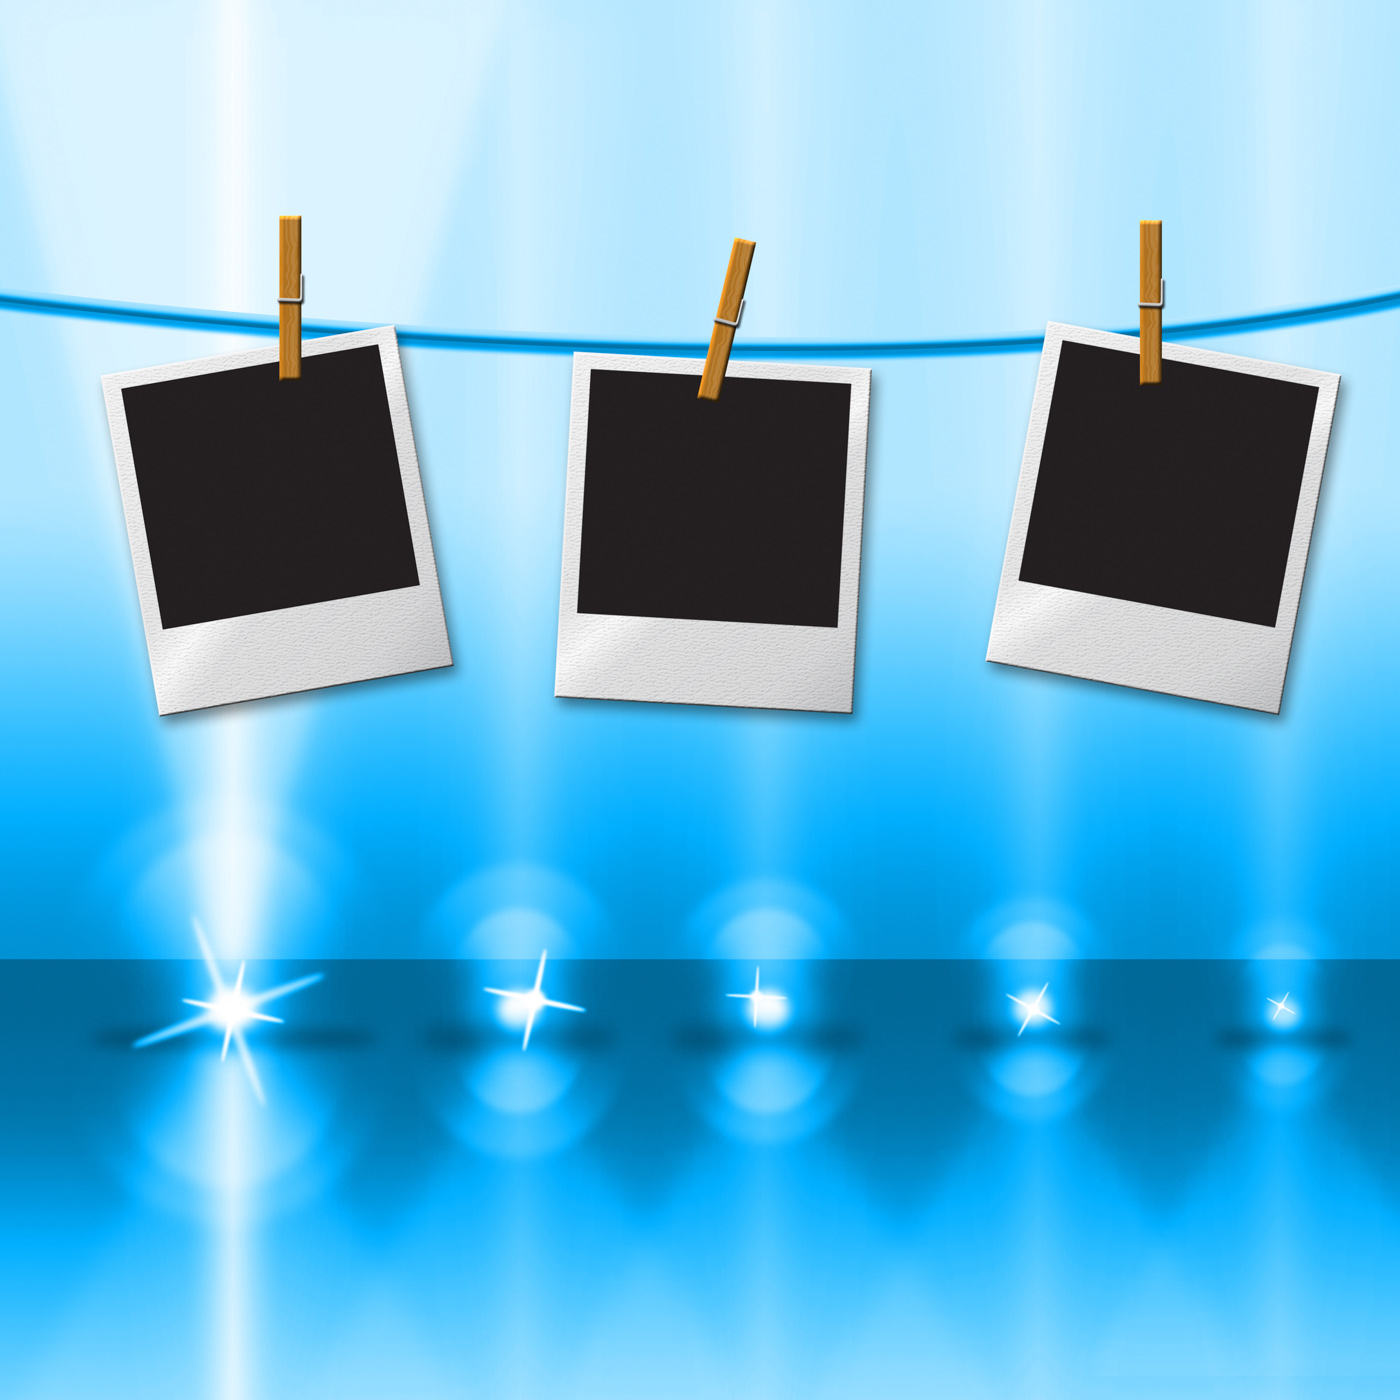 Photo Frames Means Beam Of Light And Border, Theater, Photography, Stagelights, Stage, HQ Photo